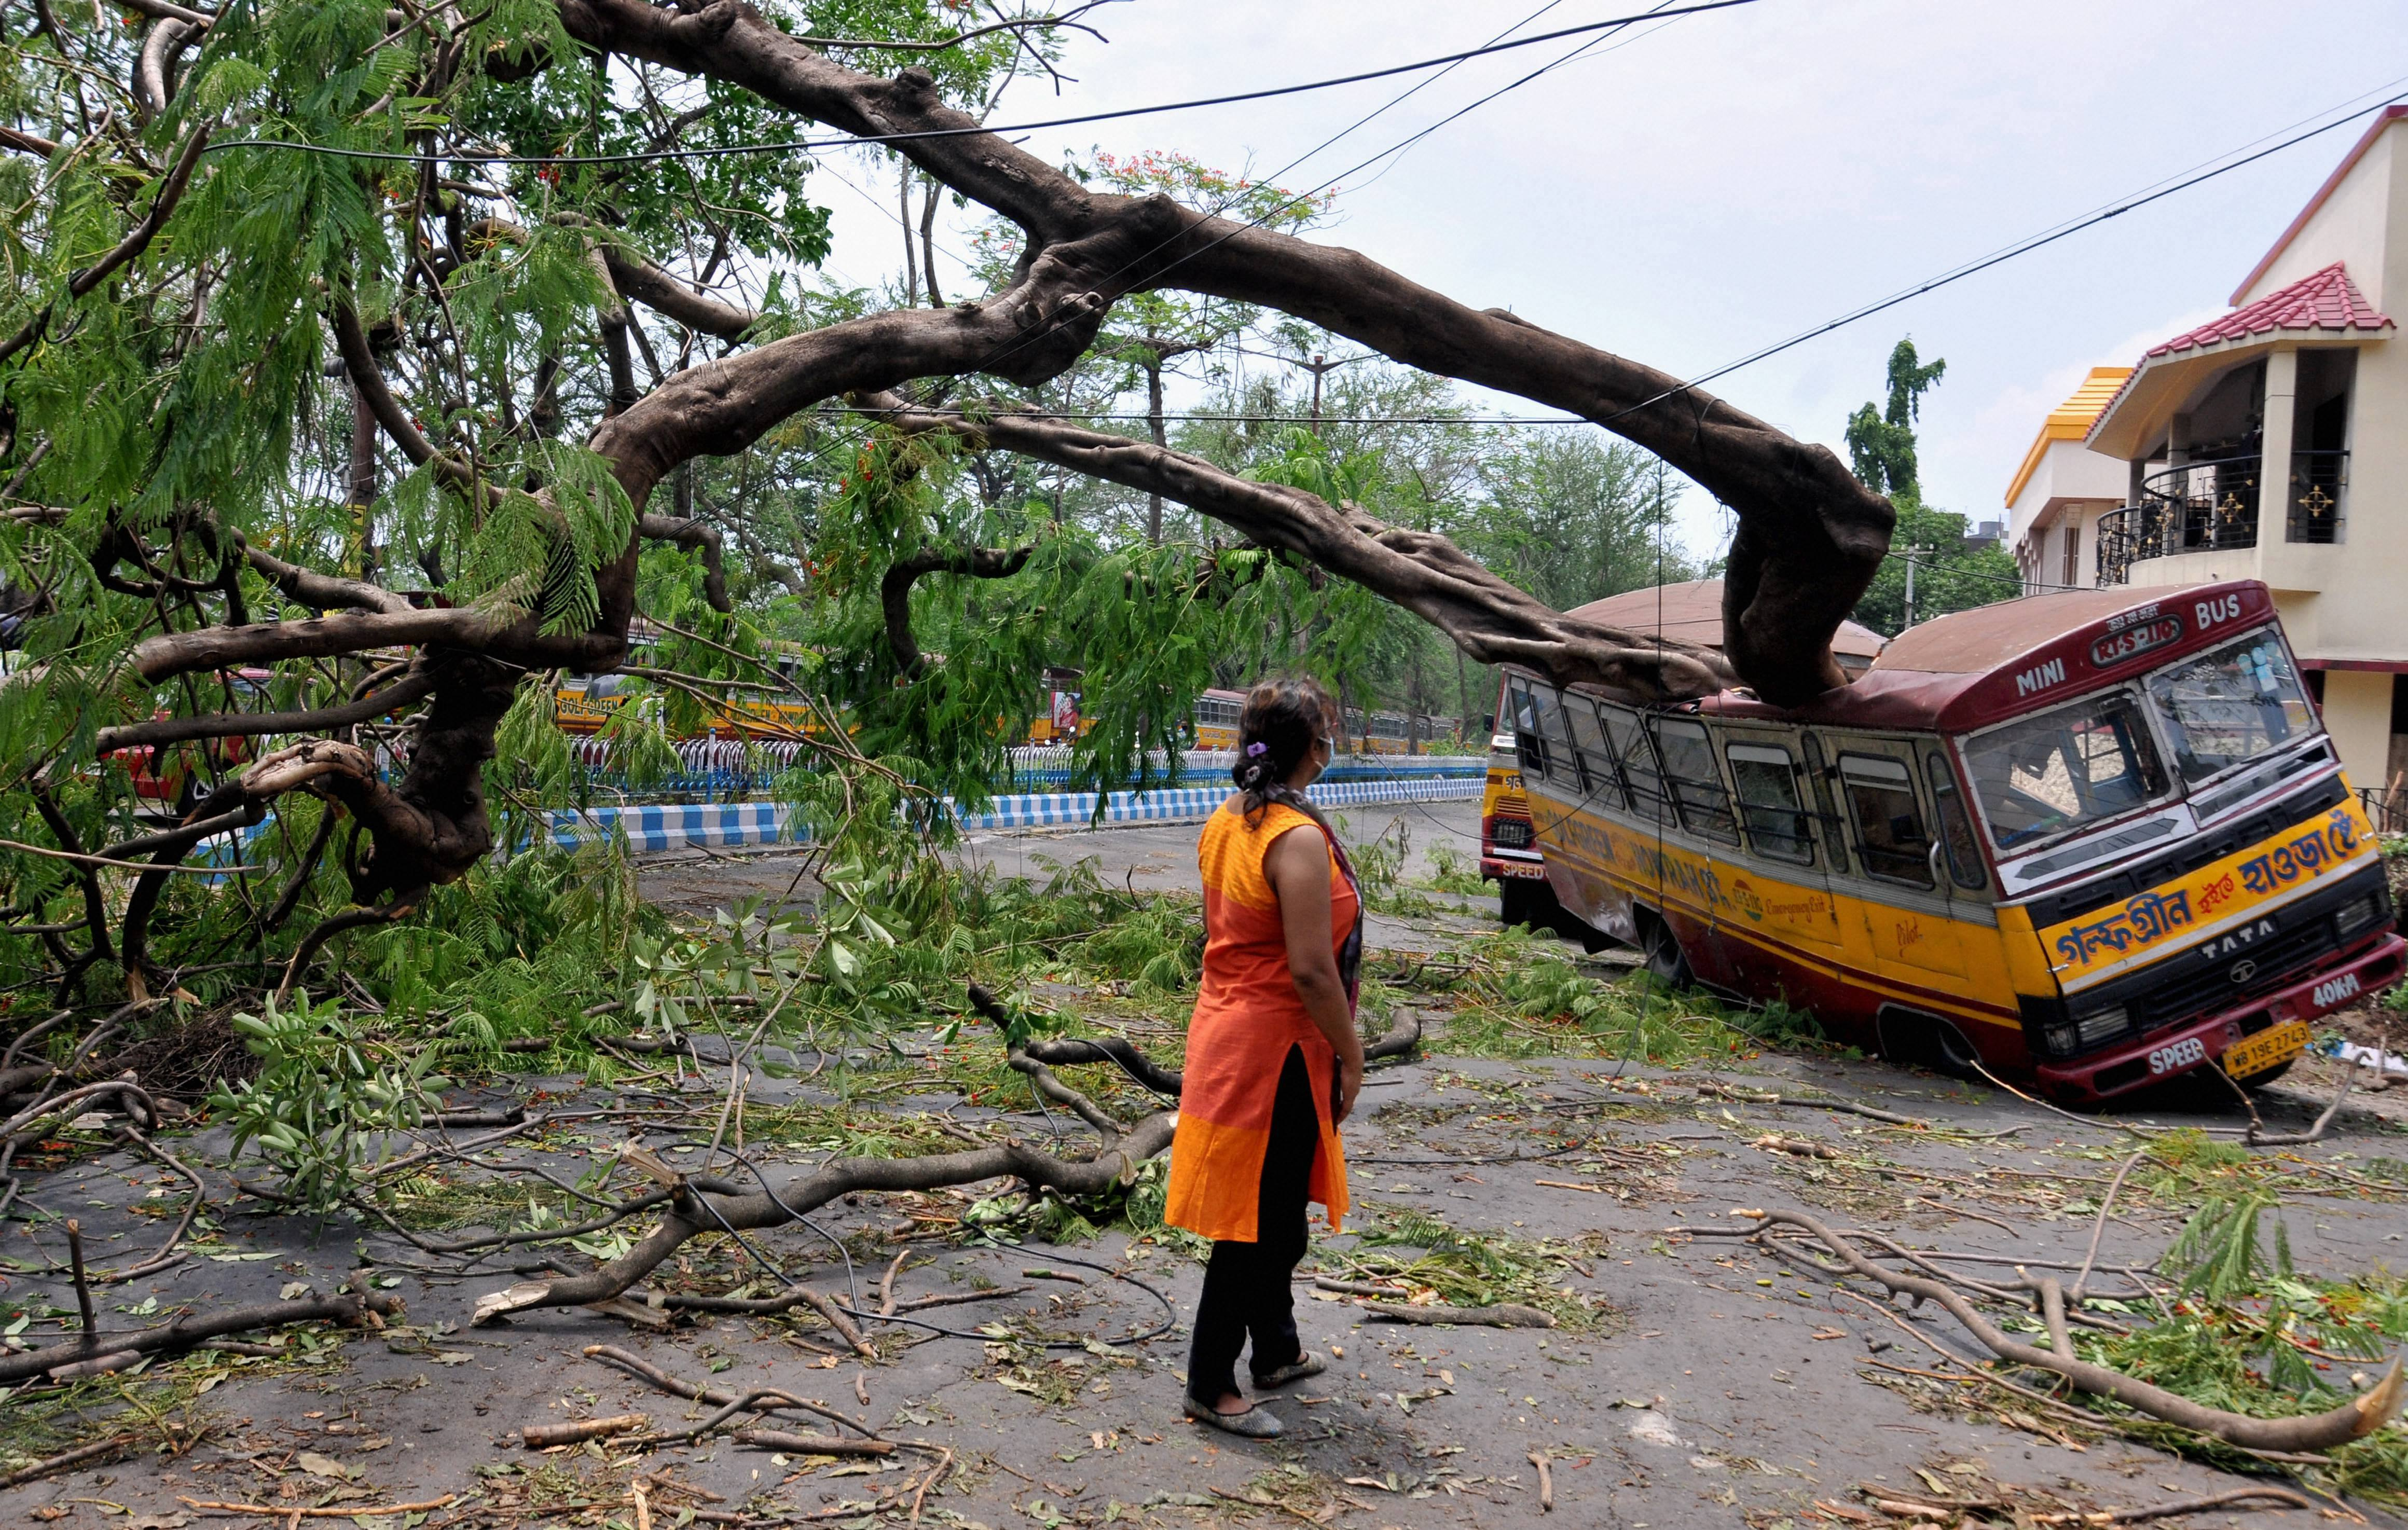 A woman looks on at the mangled remains of a bus after a tree fell on it, in the aftermath of Cyclone Amphan, in Calcutta